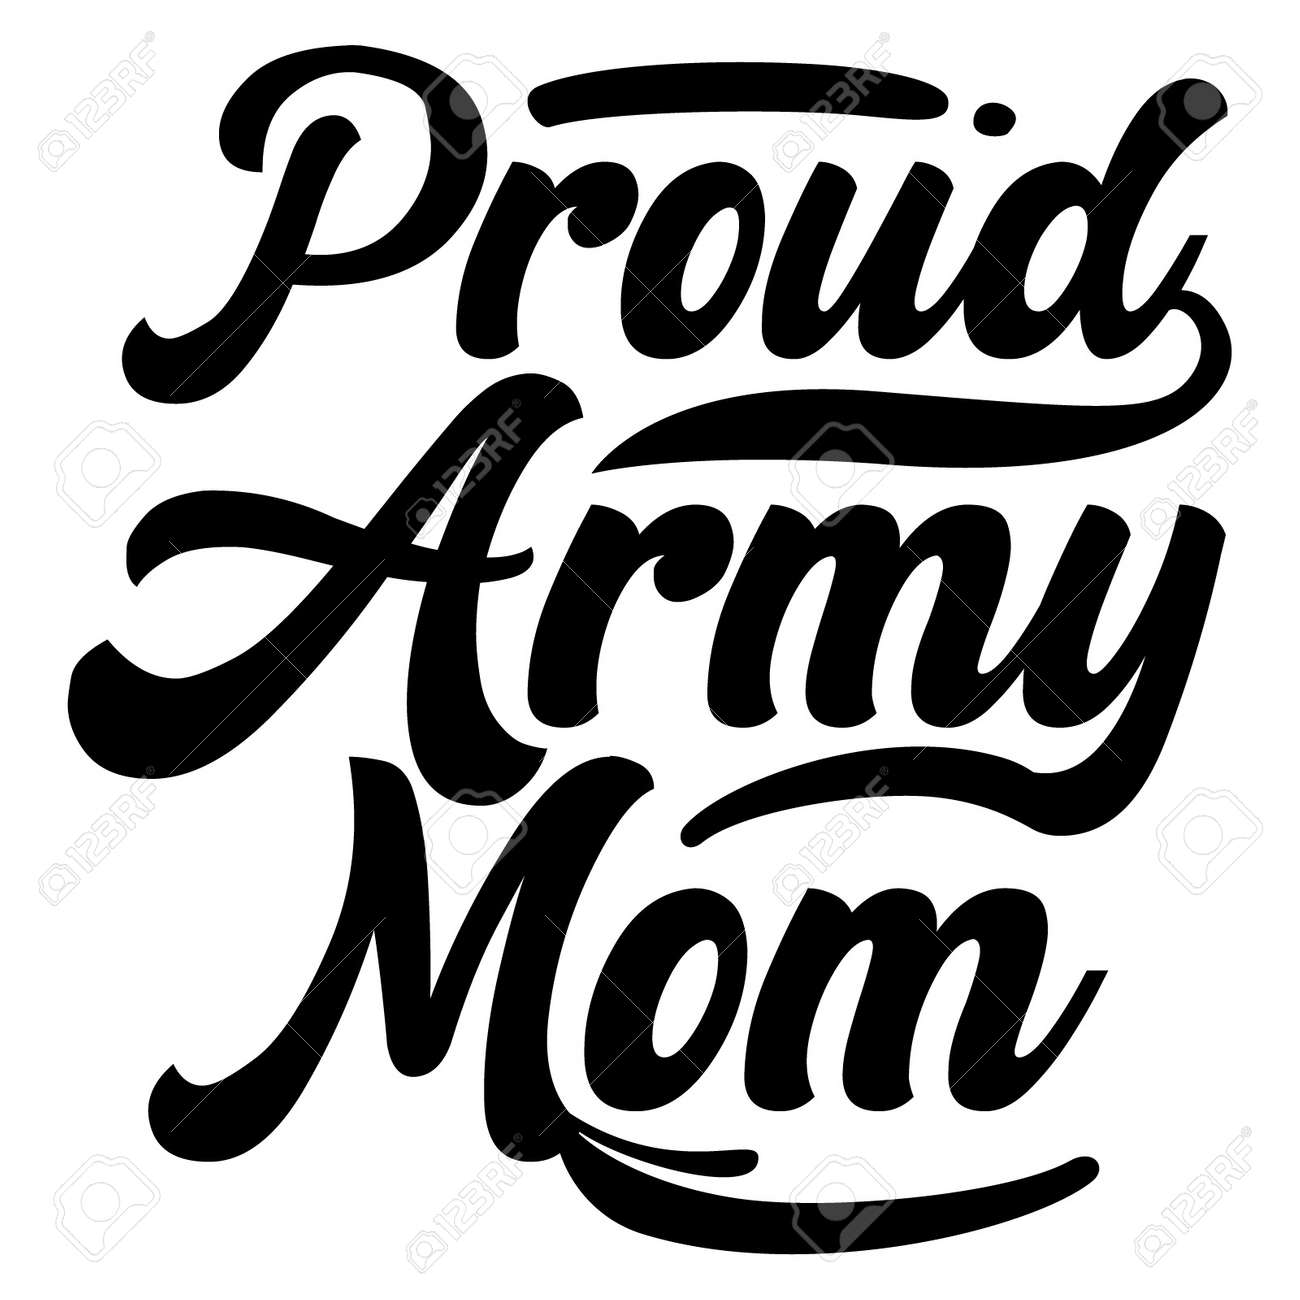 proud army mom, celebration mother day design - 166461638